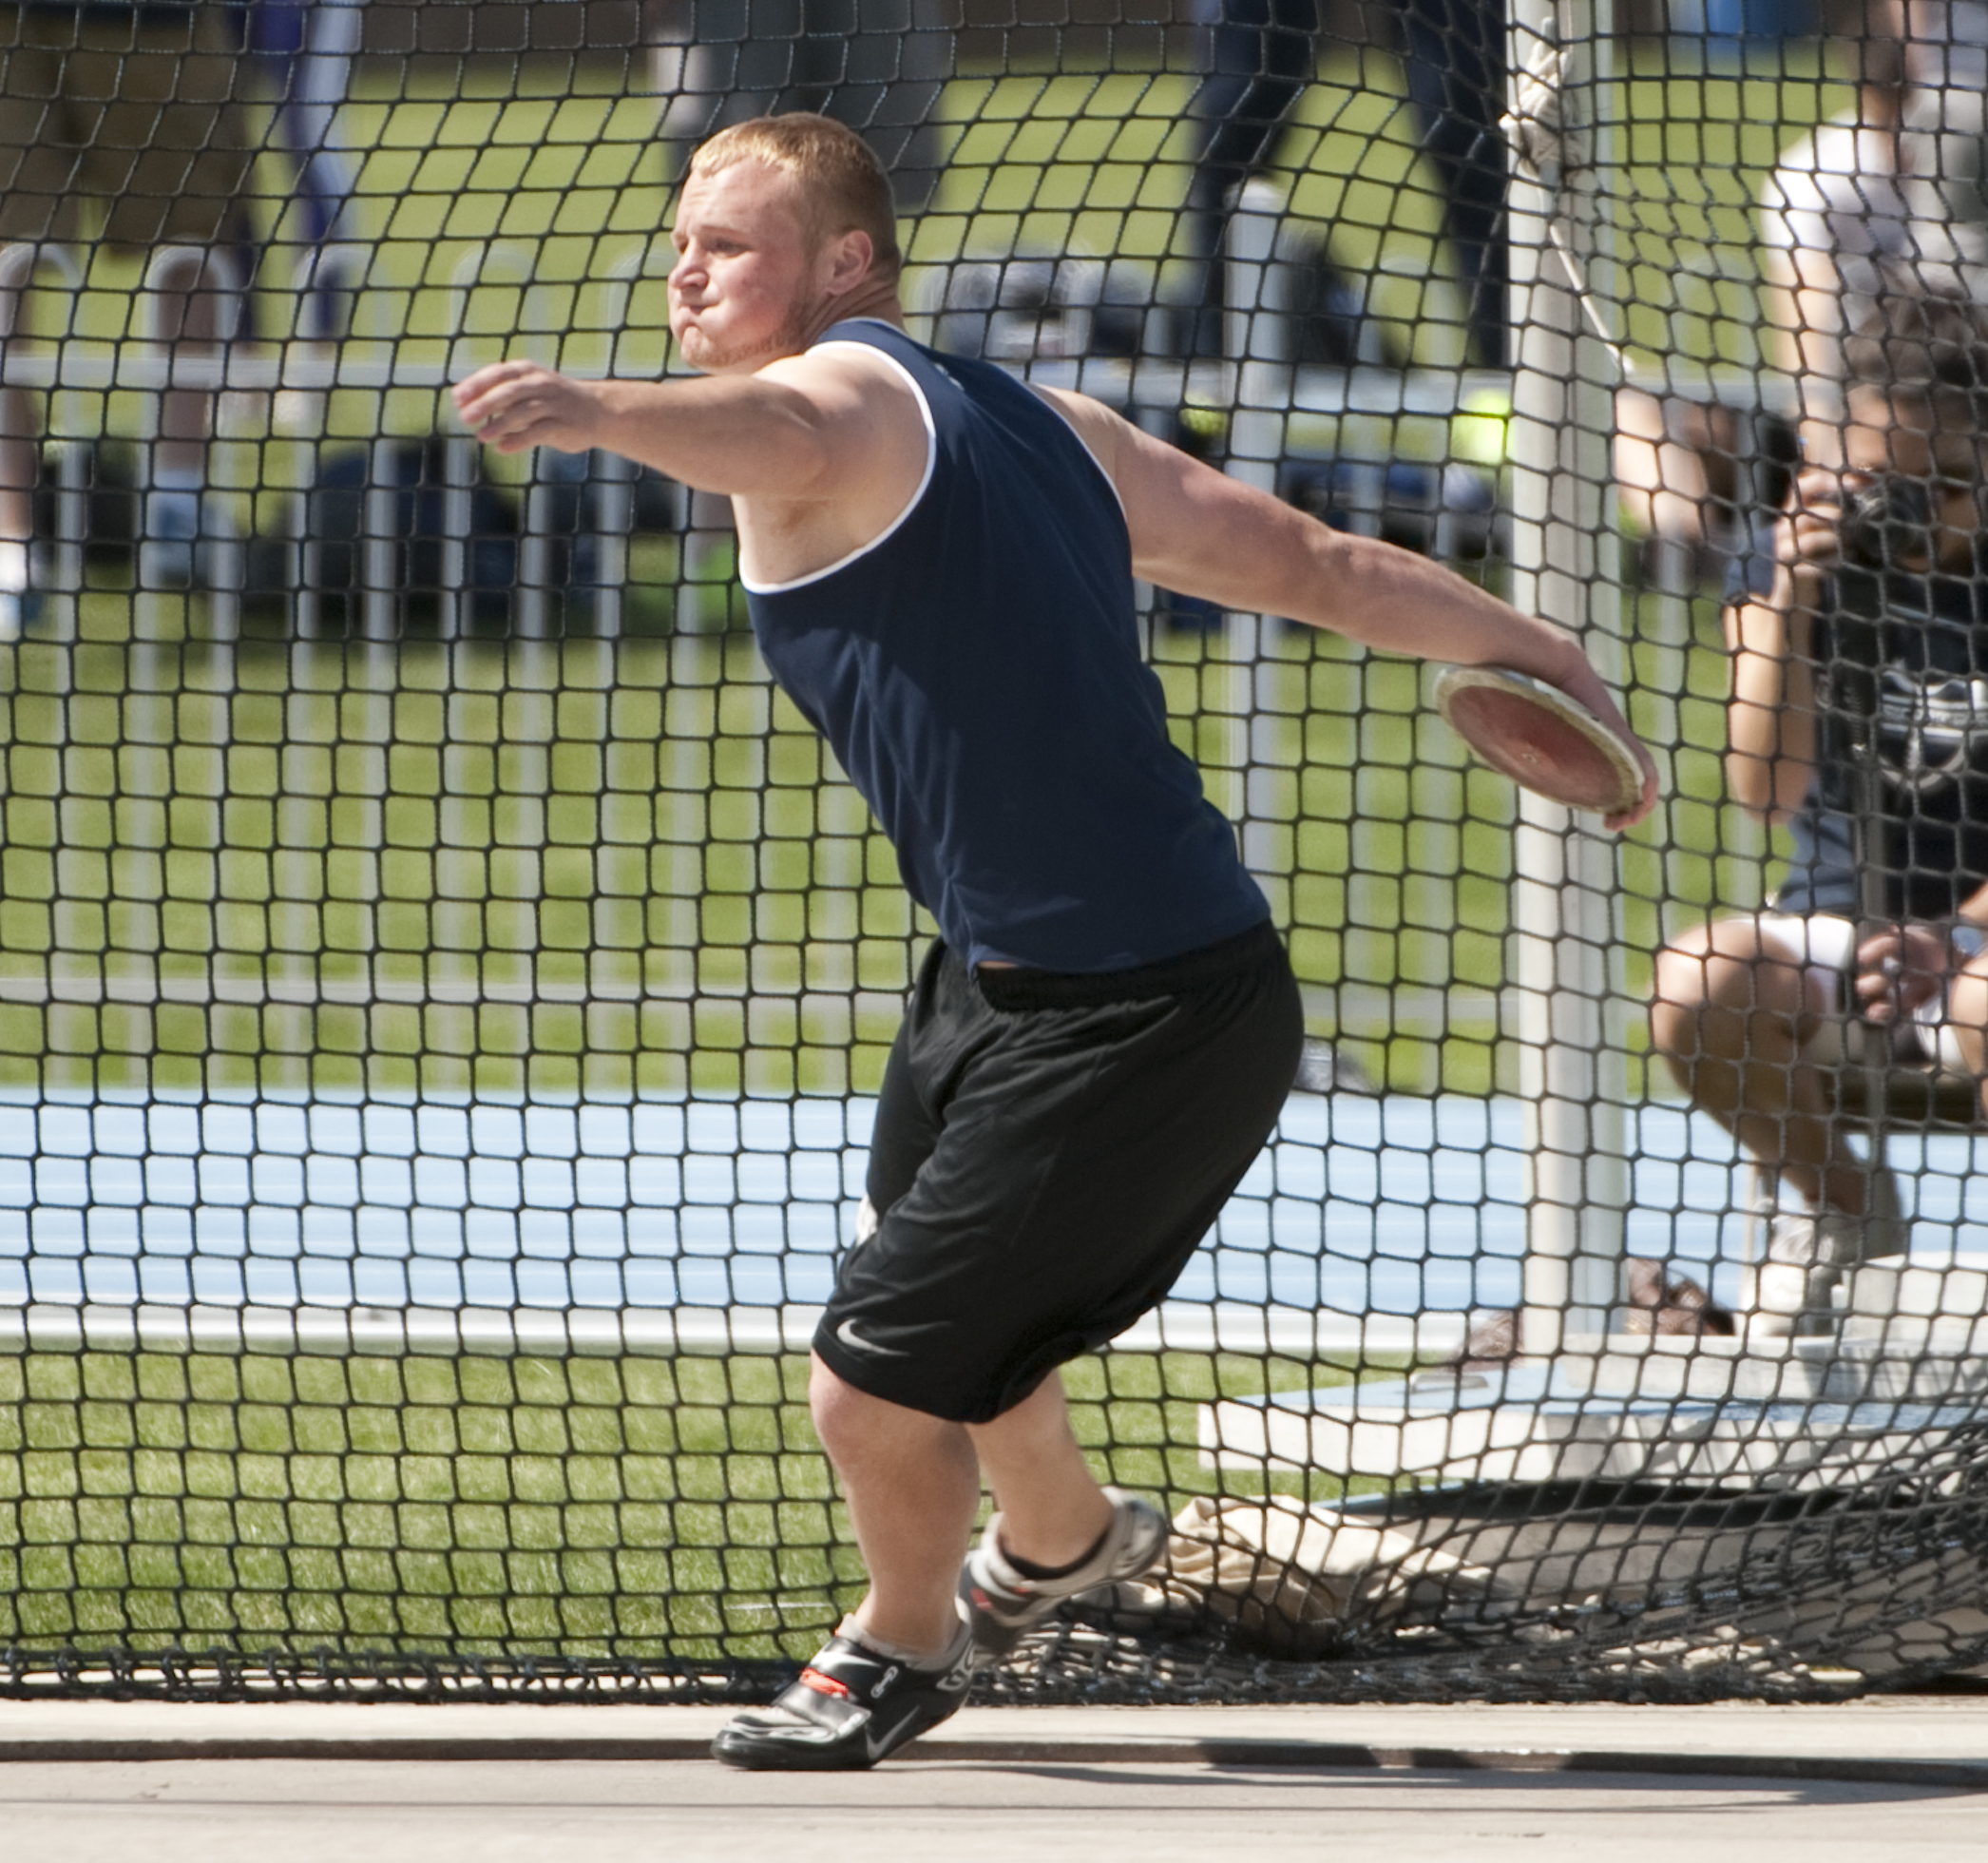 Discus Track And Field a Byu Track And Field Athlete